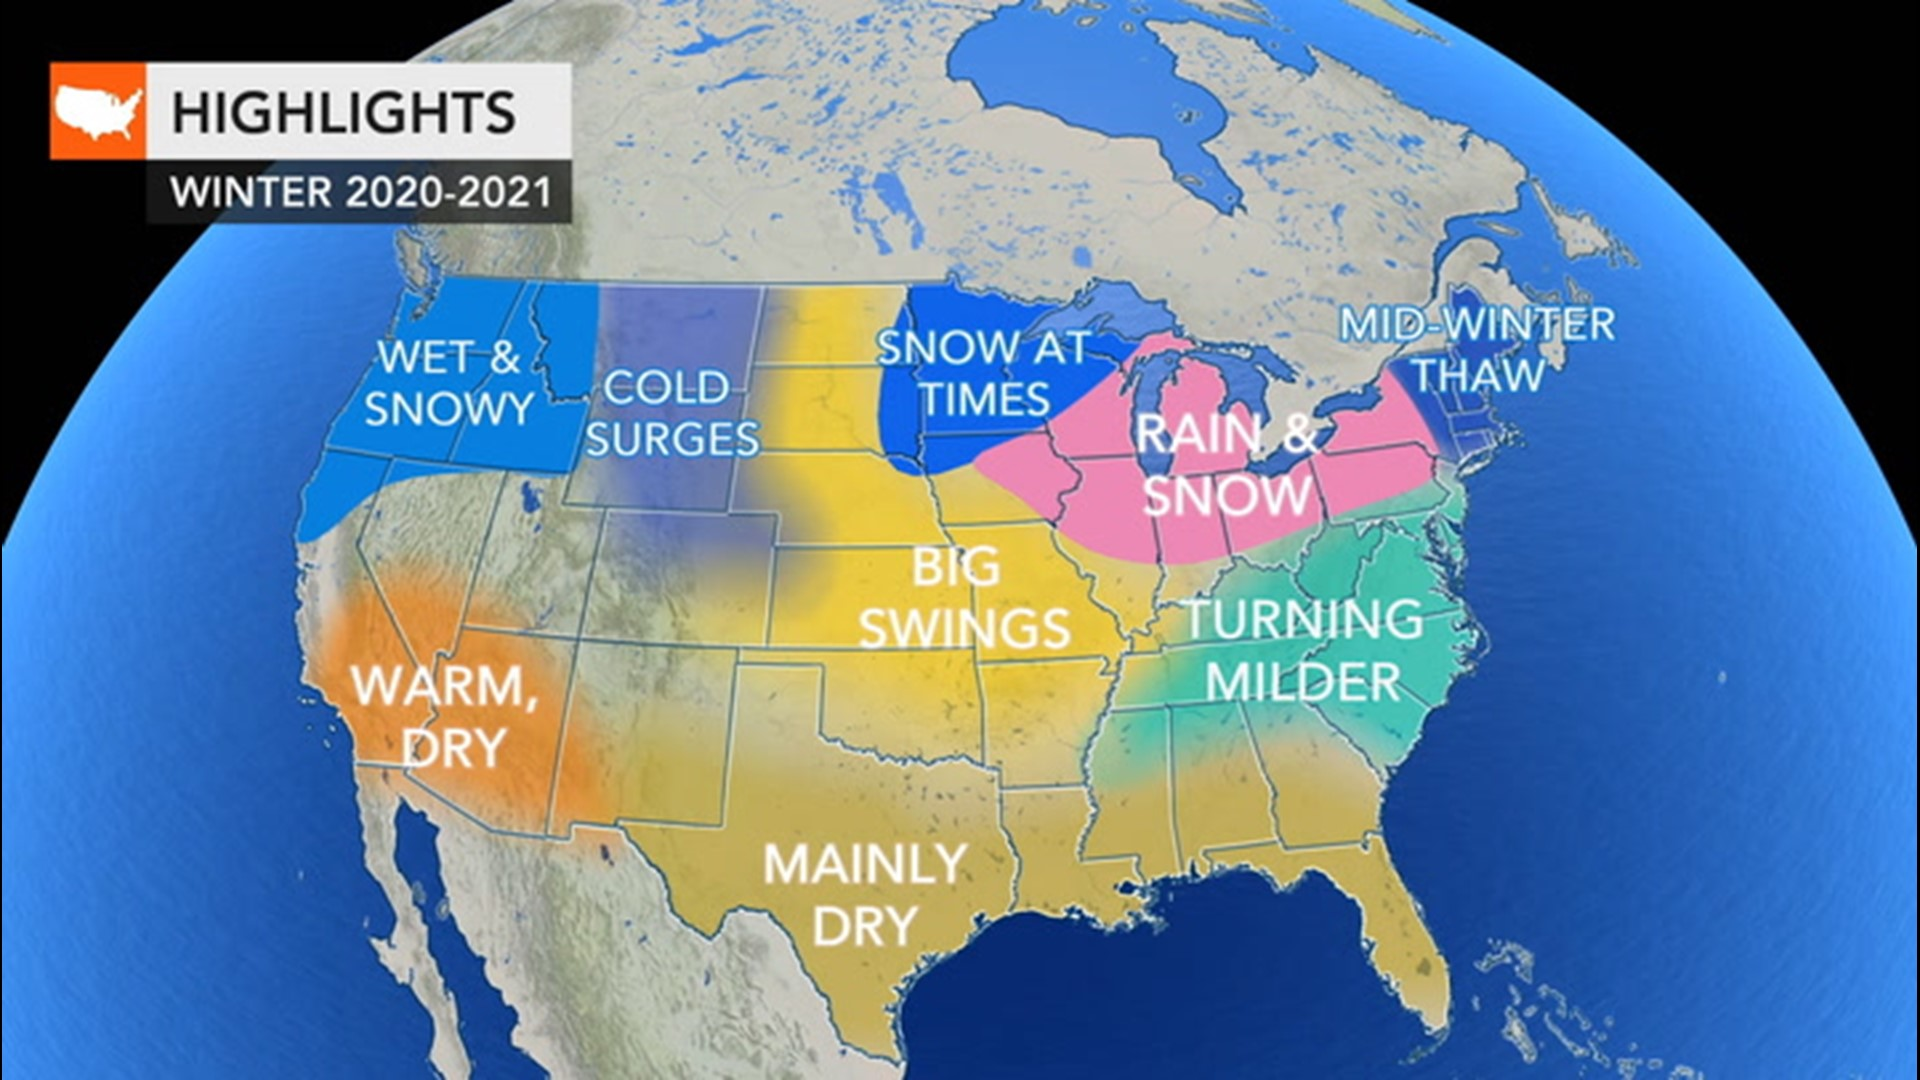 Christmas Weather In East Texas 2020 Winter is coming; here's the winter weather forecast for around